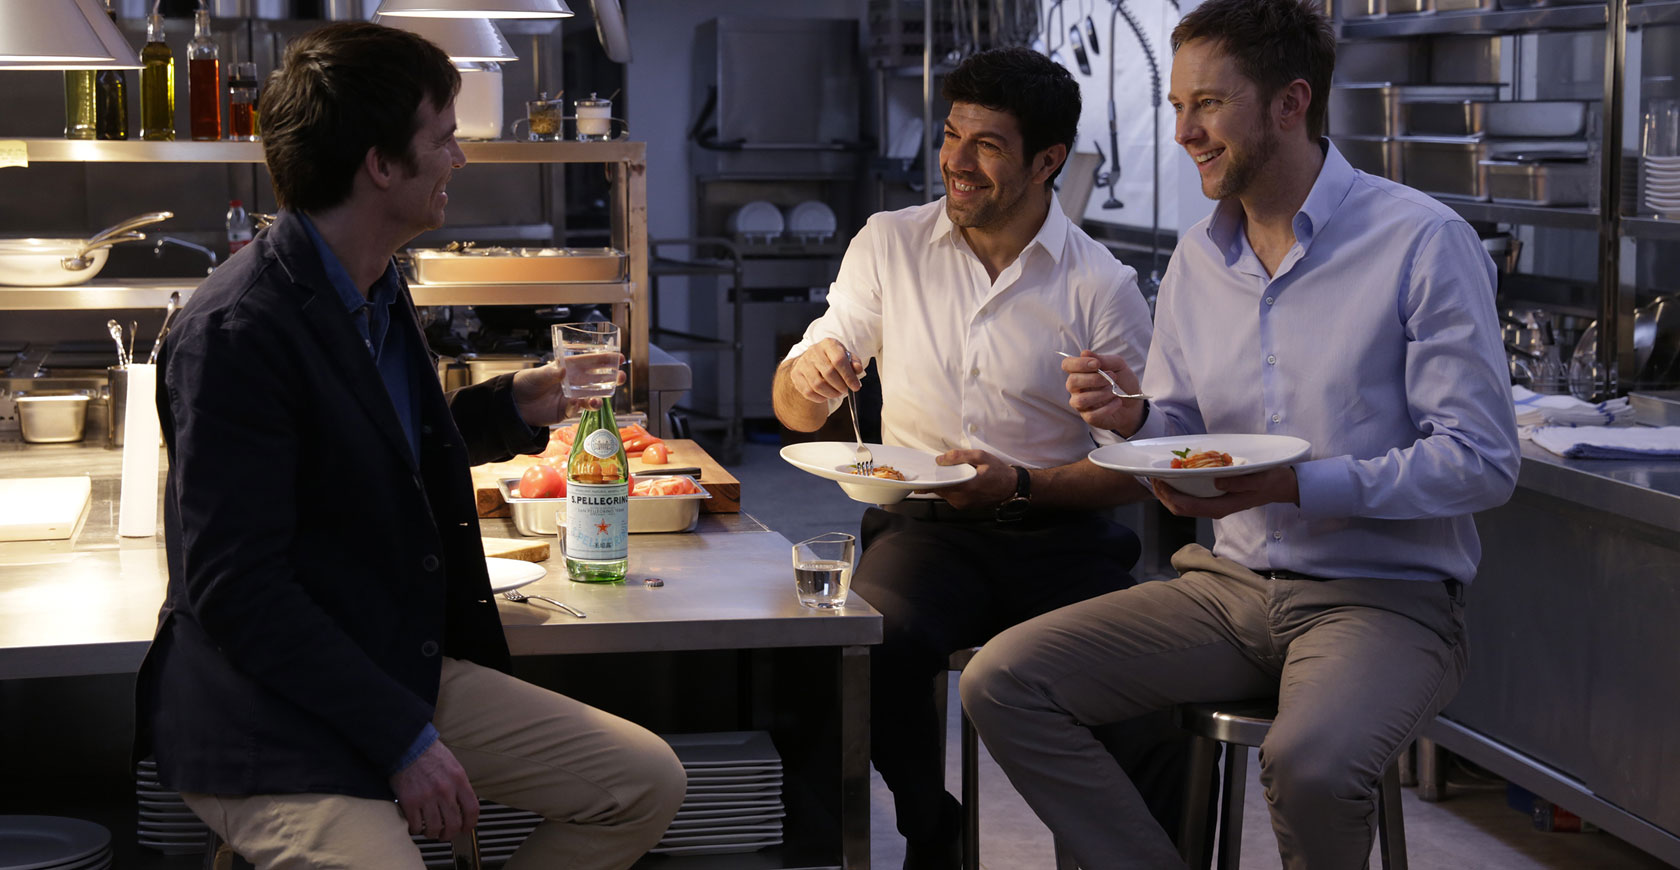 S.PELLEGRINO START MET NIEUWE INTERNATIONALE CAMPAGNE